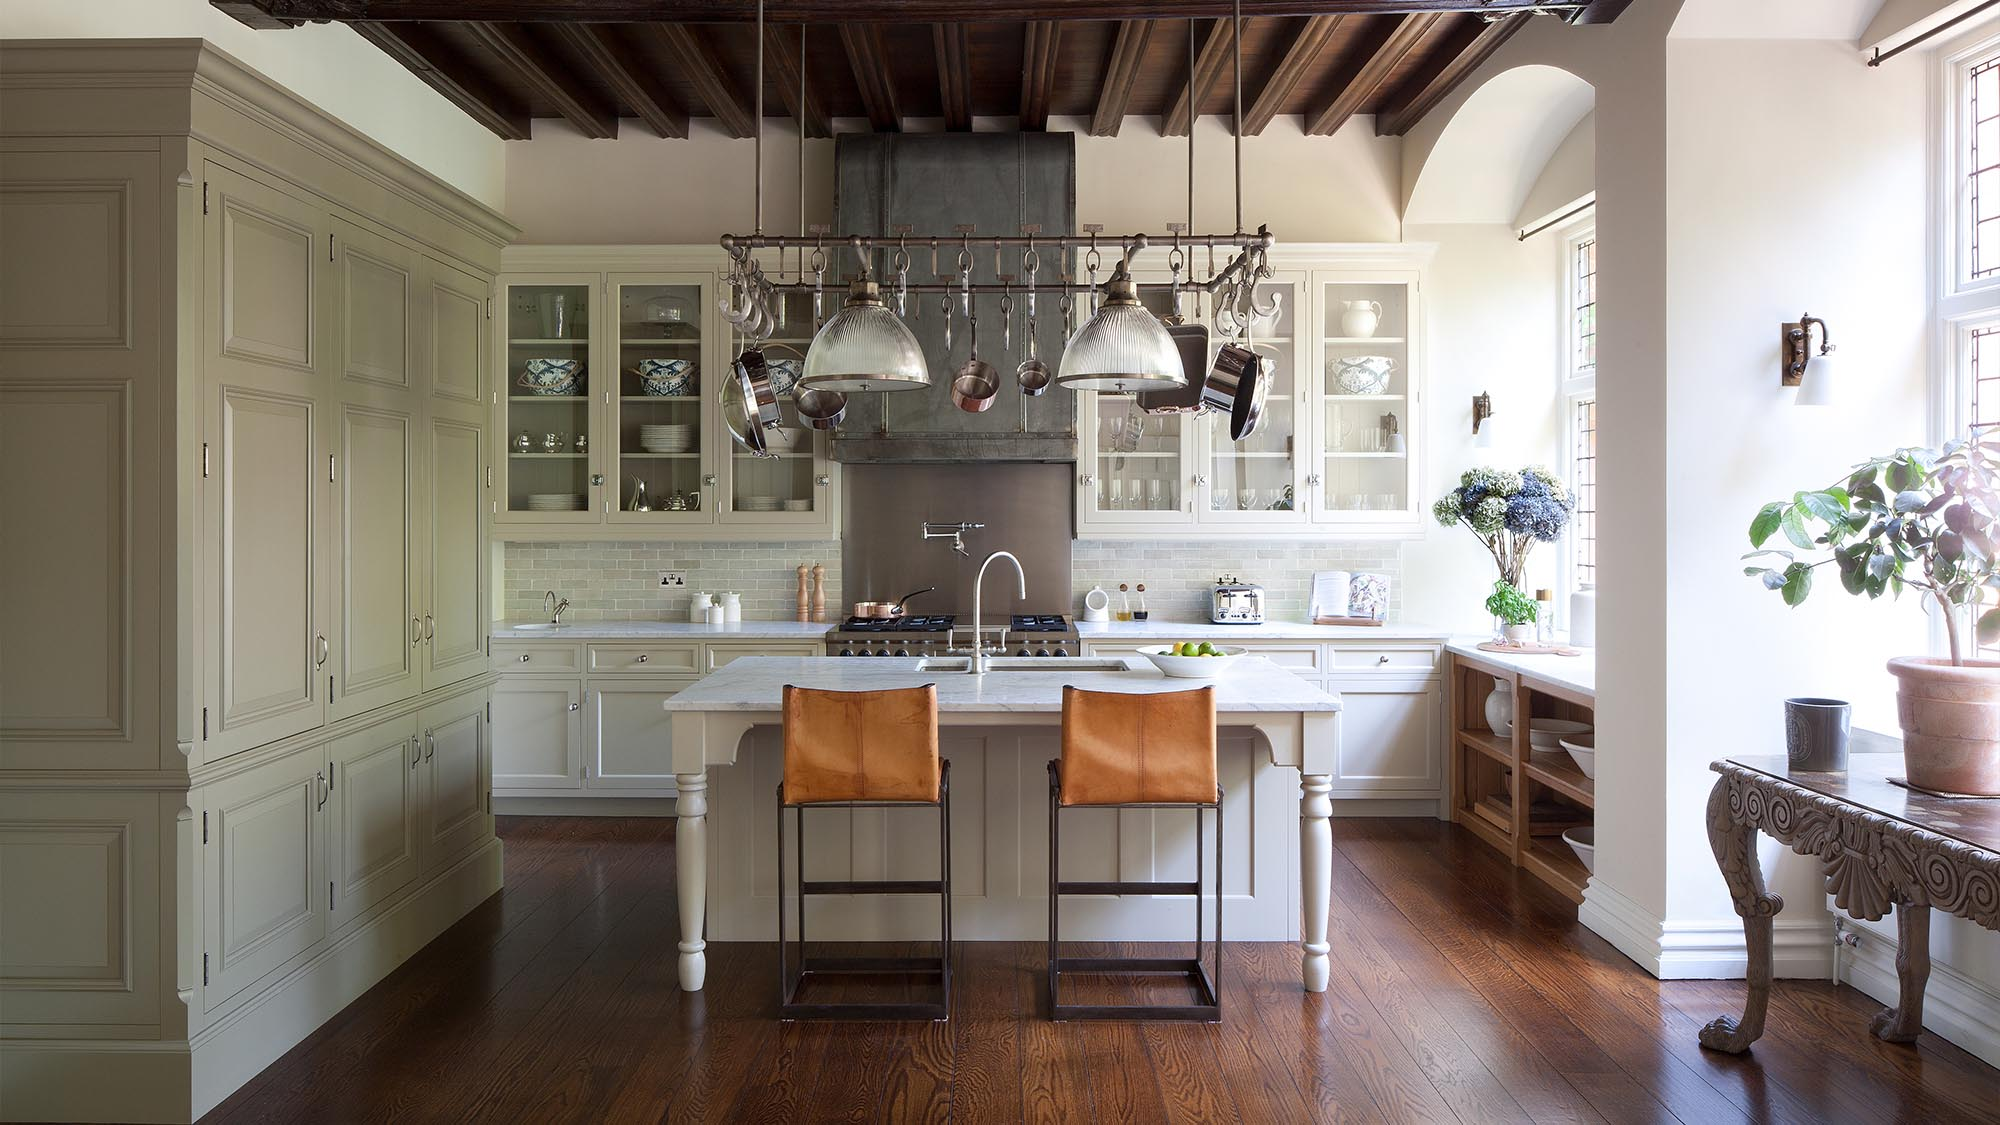 Bespoke Kitchen Design Tips - Header image